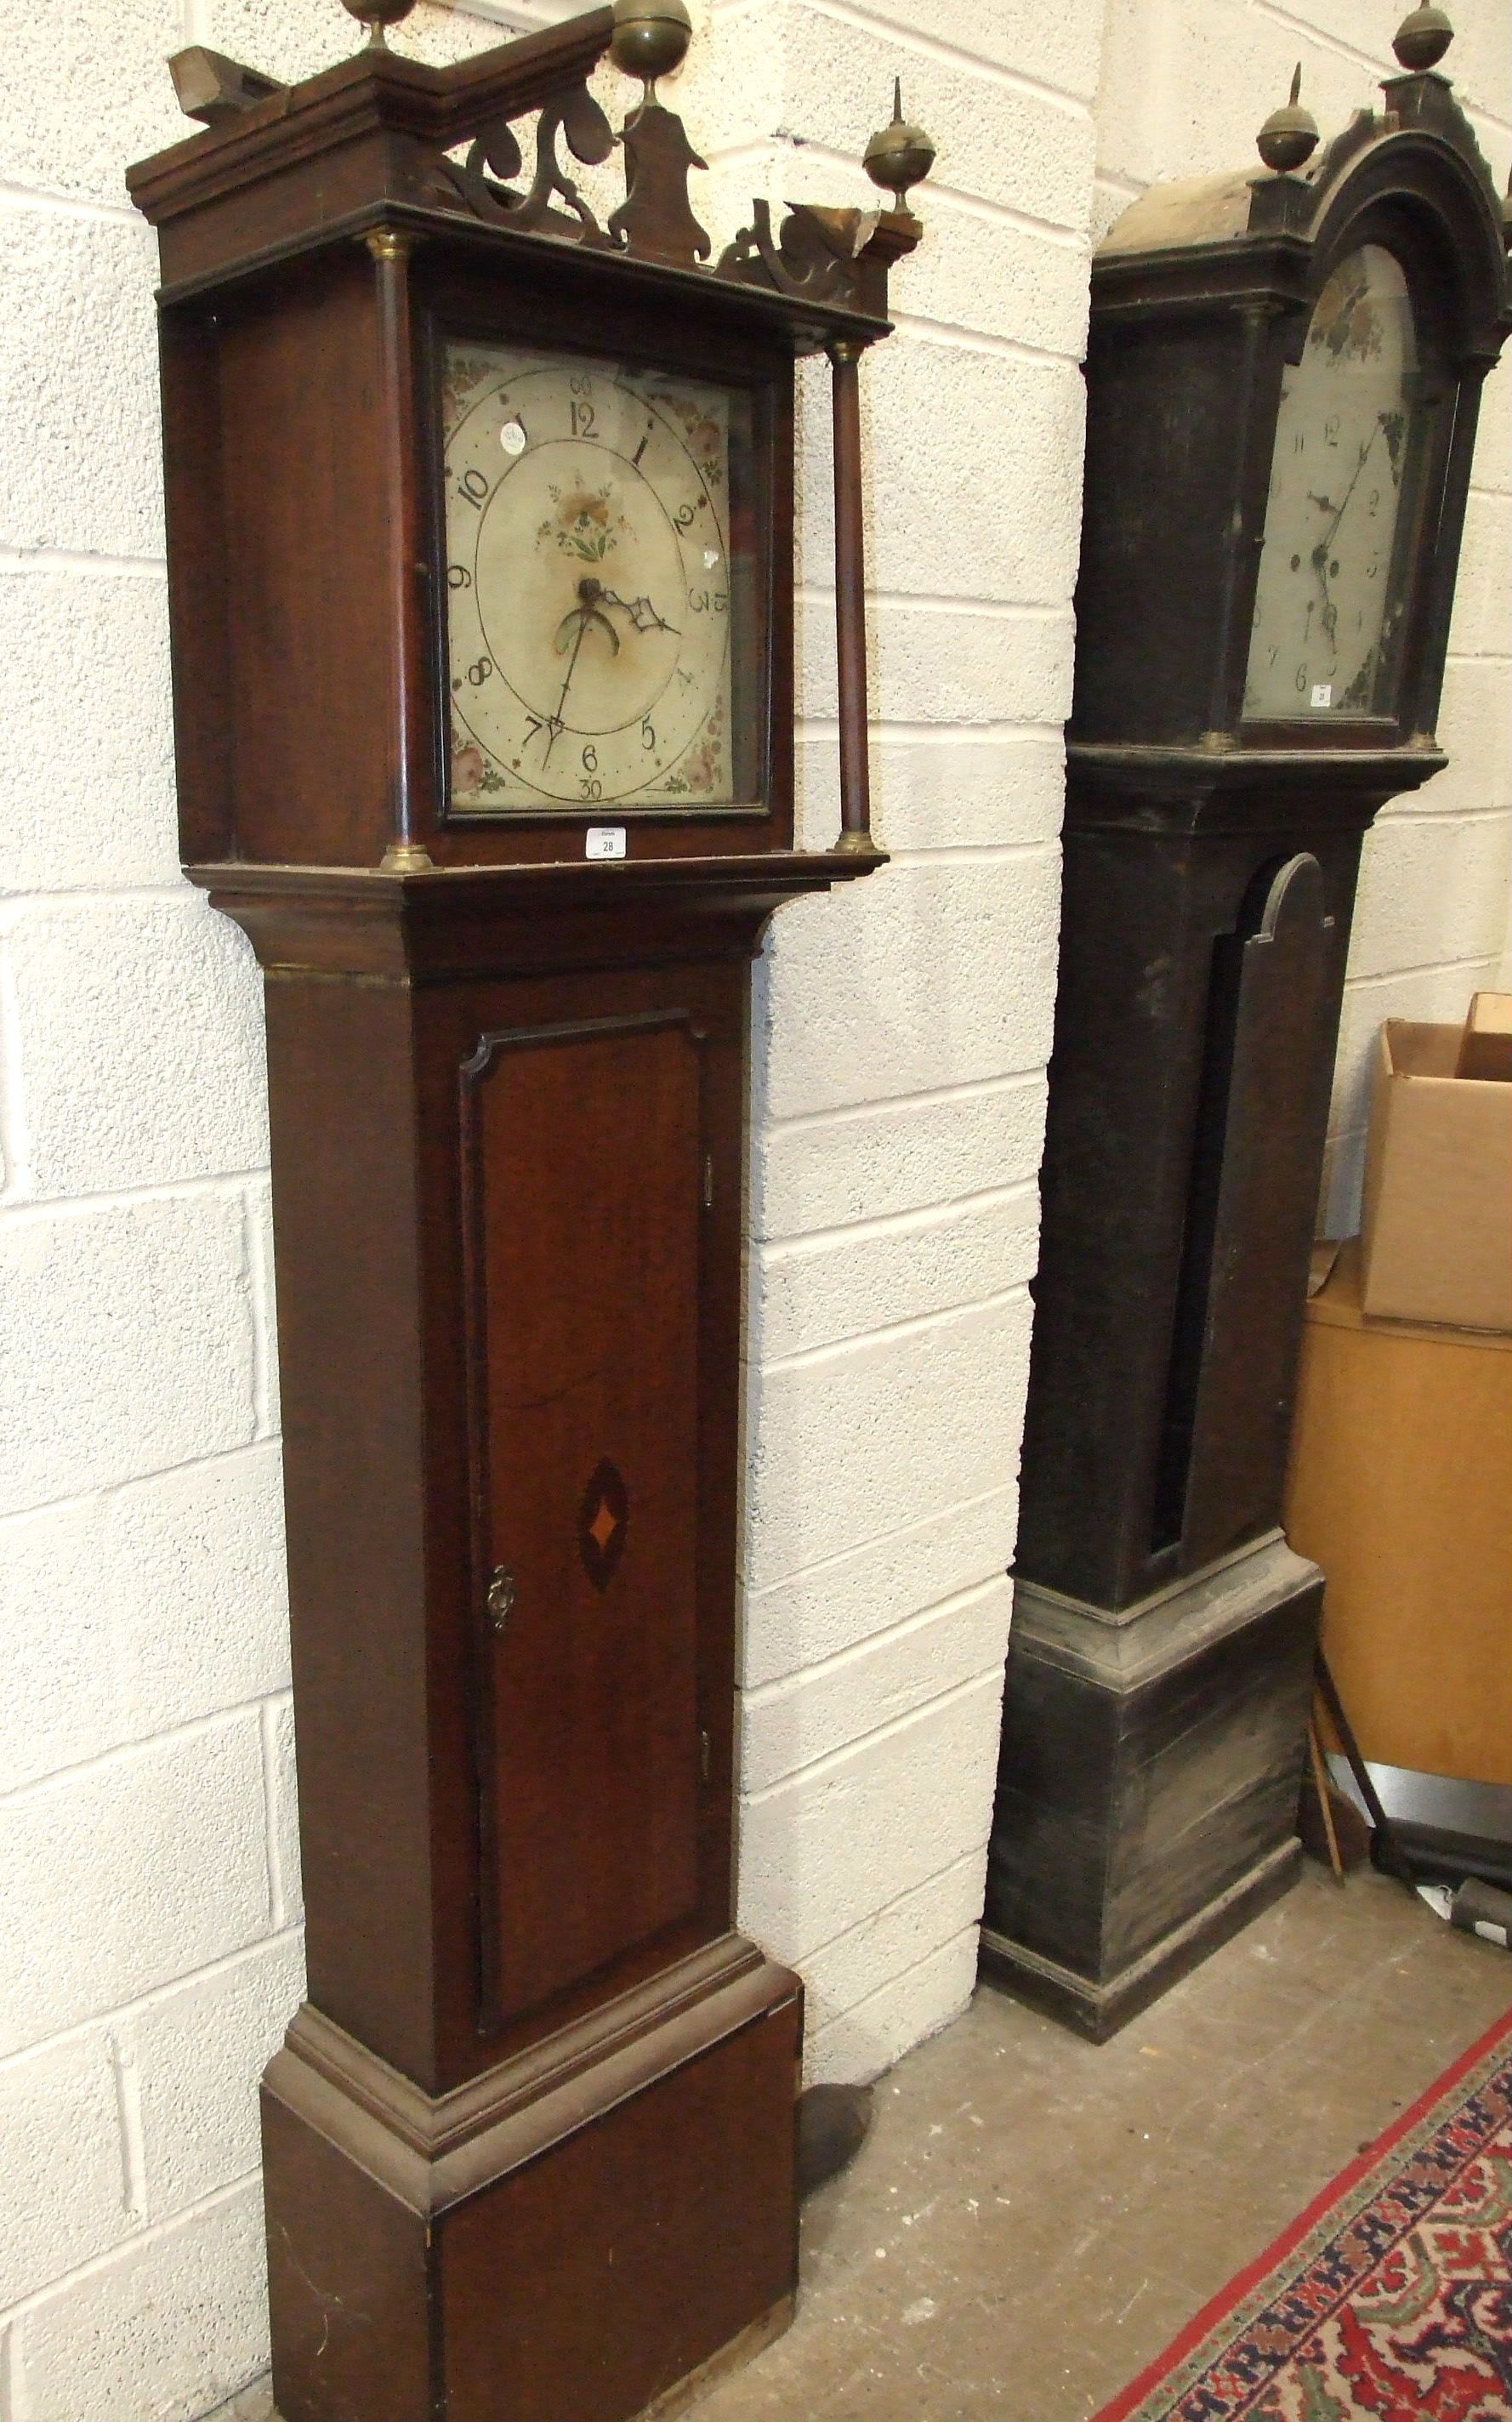 A 19th century mahogany long case clock with painted arched dial and bell-striking twin-train